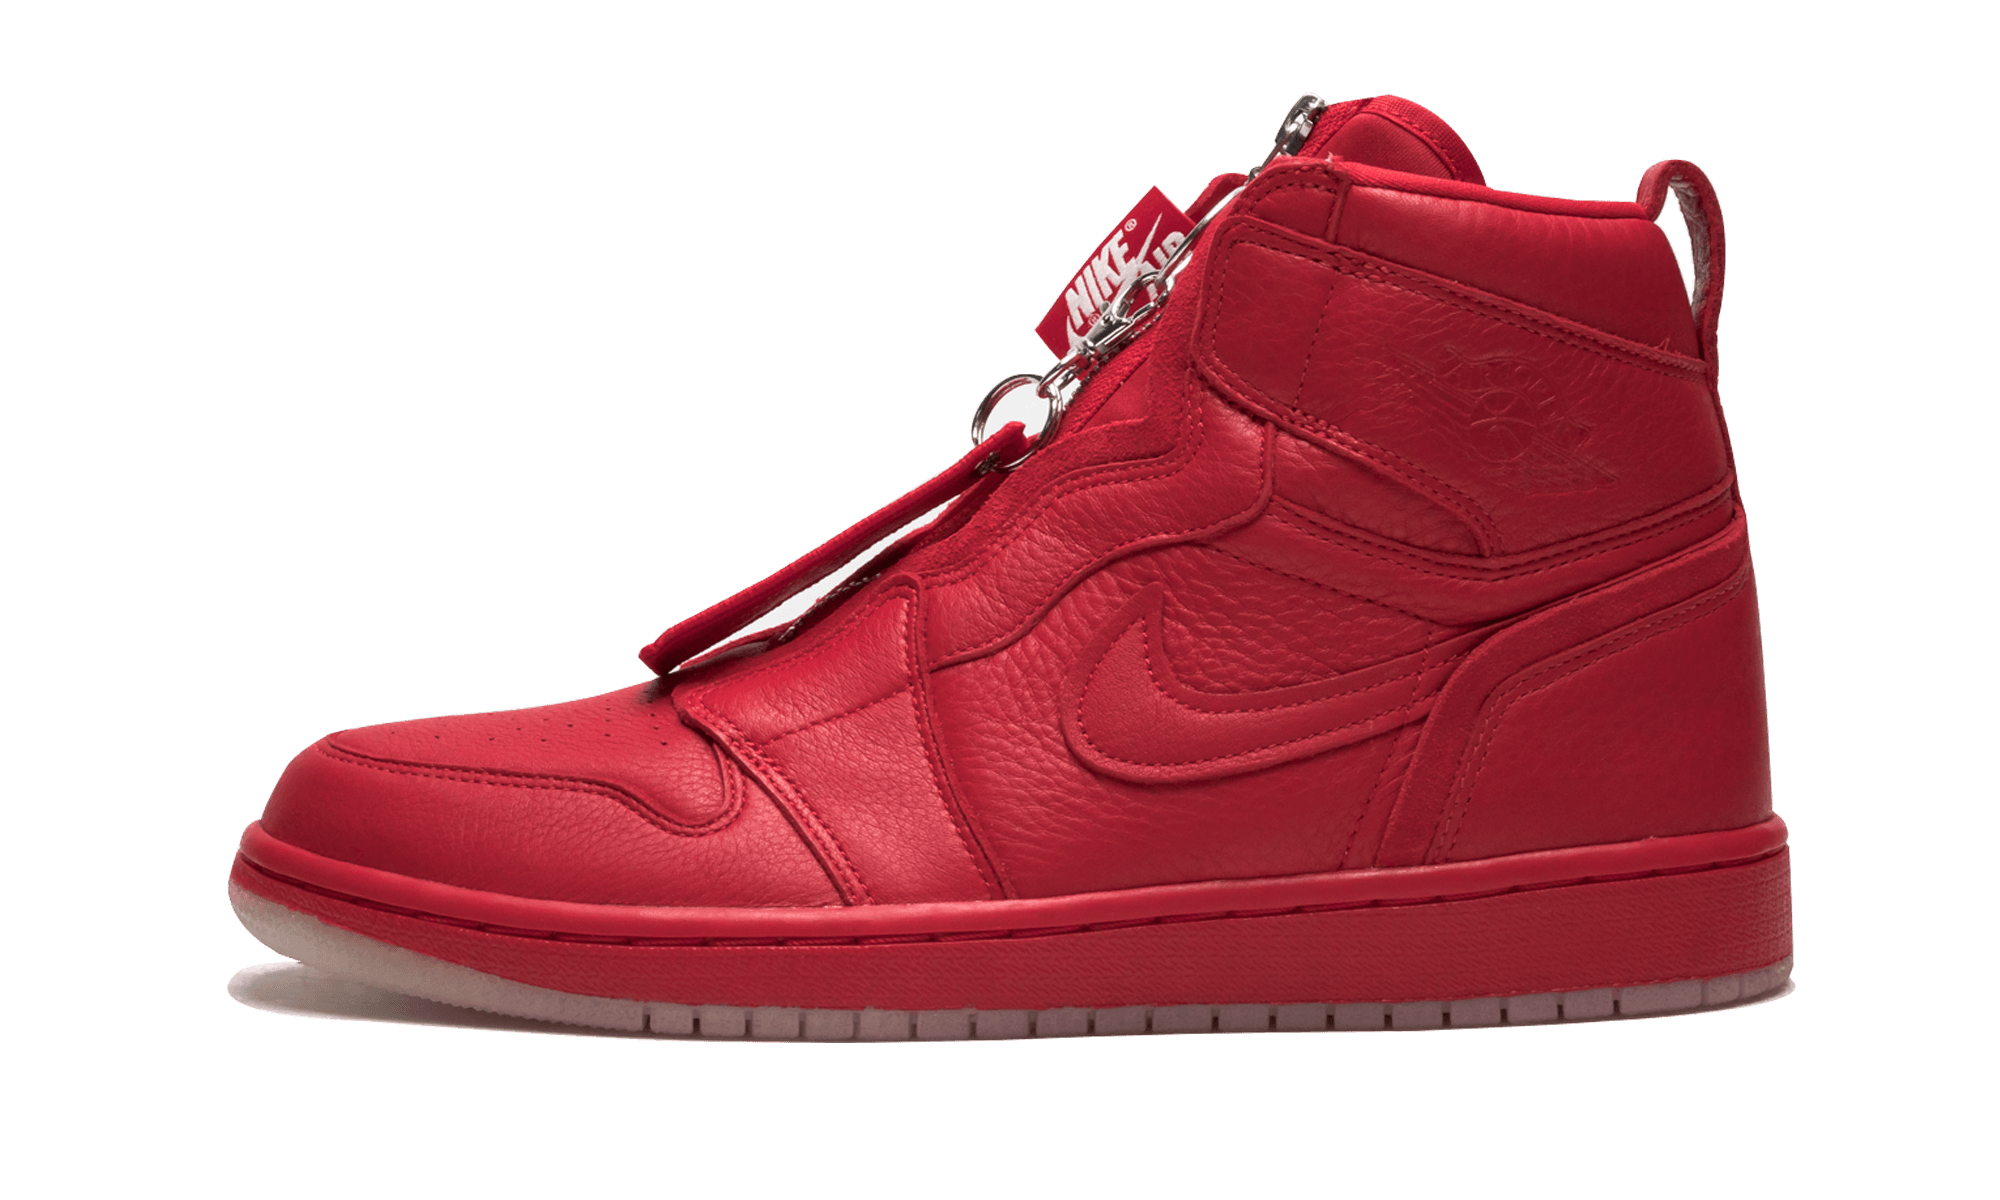 5cb43272fe3c27 The Vogue x Air Jordan 1 Zip AWOK is the headlining piece of the 2018  collaboration between the iconic fashion magazine and the legendary sneaker  brand.